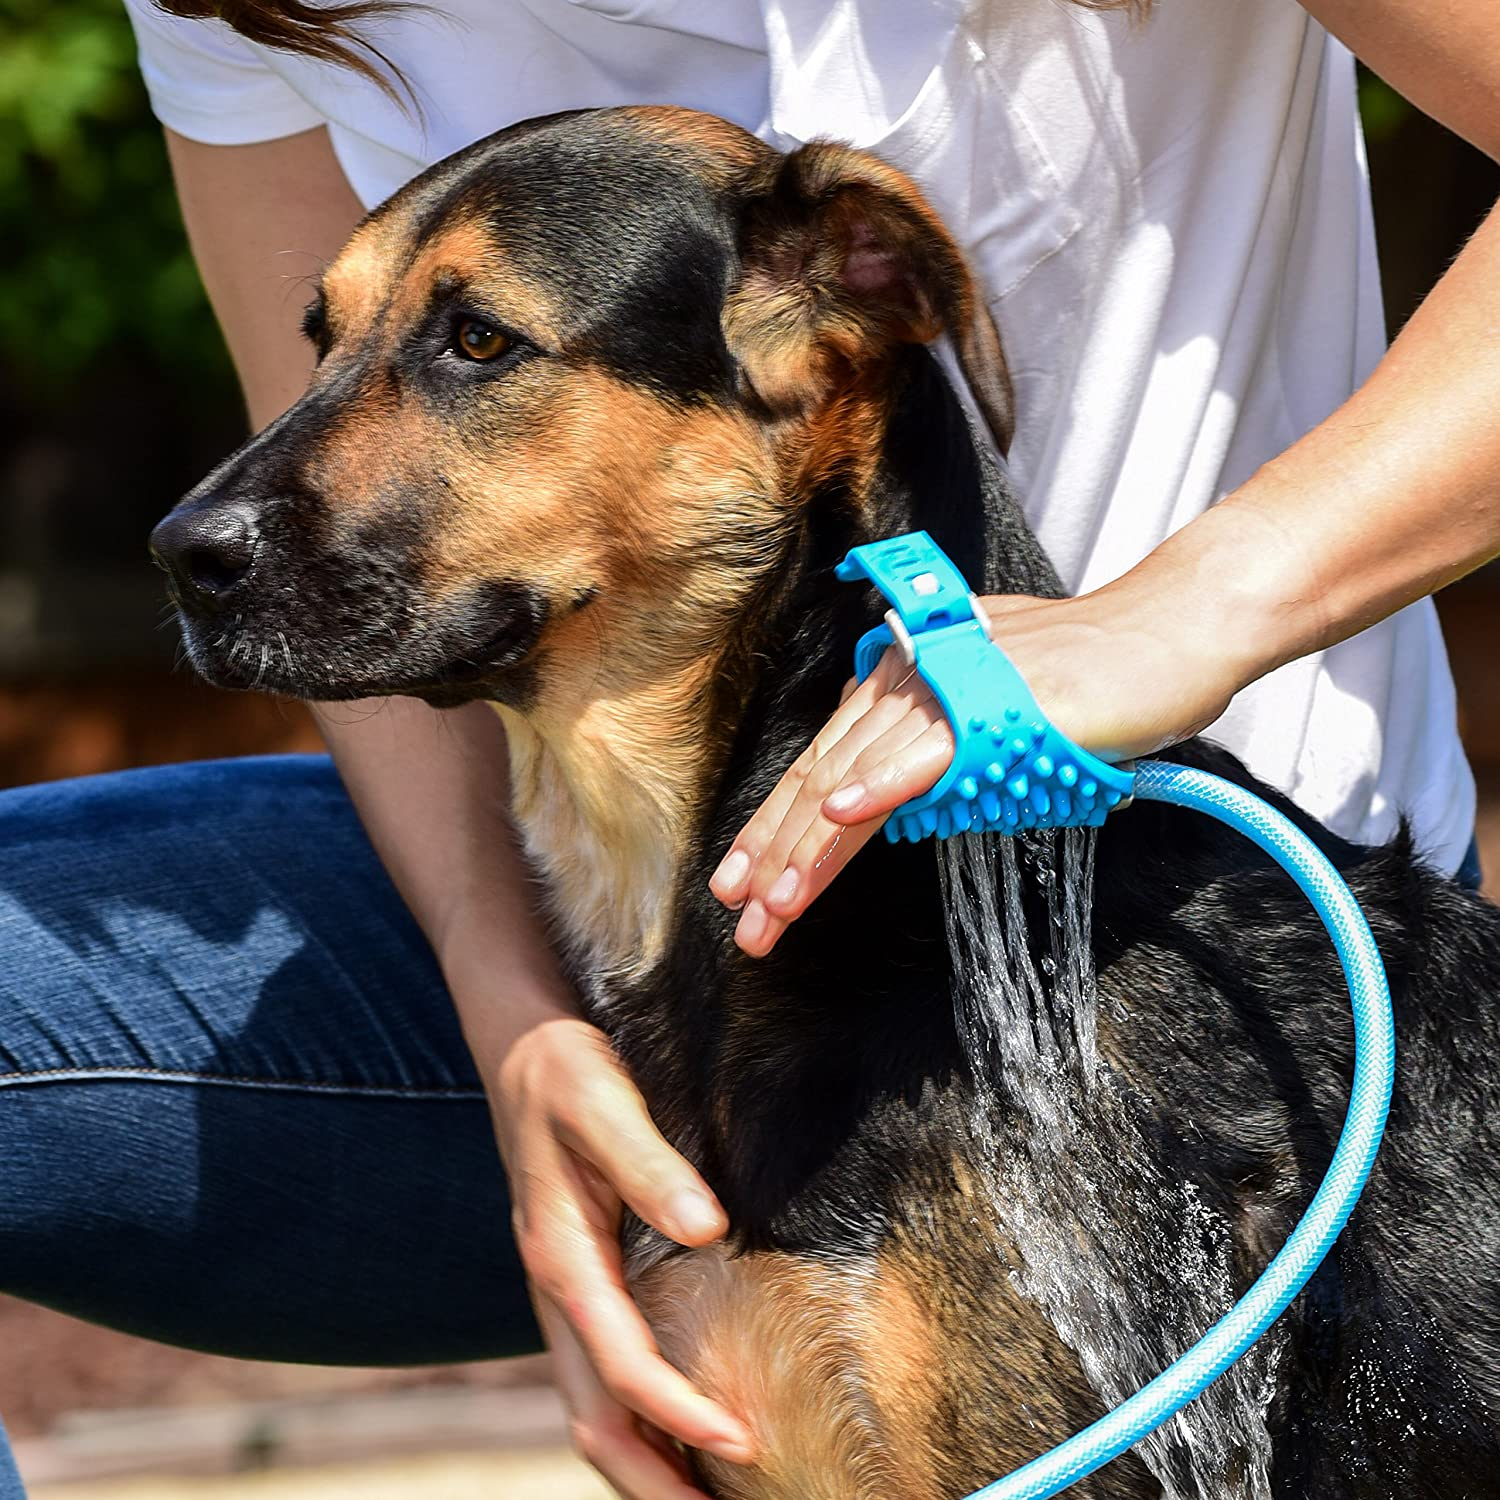 Aquapaw Pet Bathing Tool For Pet Grooming - great for after muddy walks!